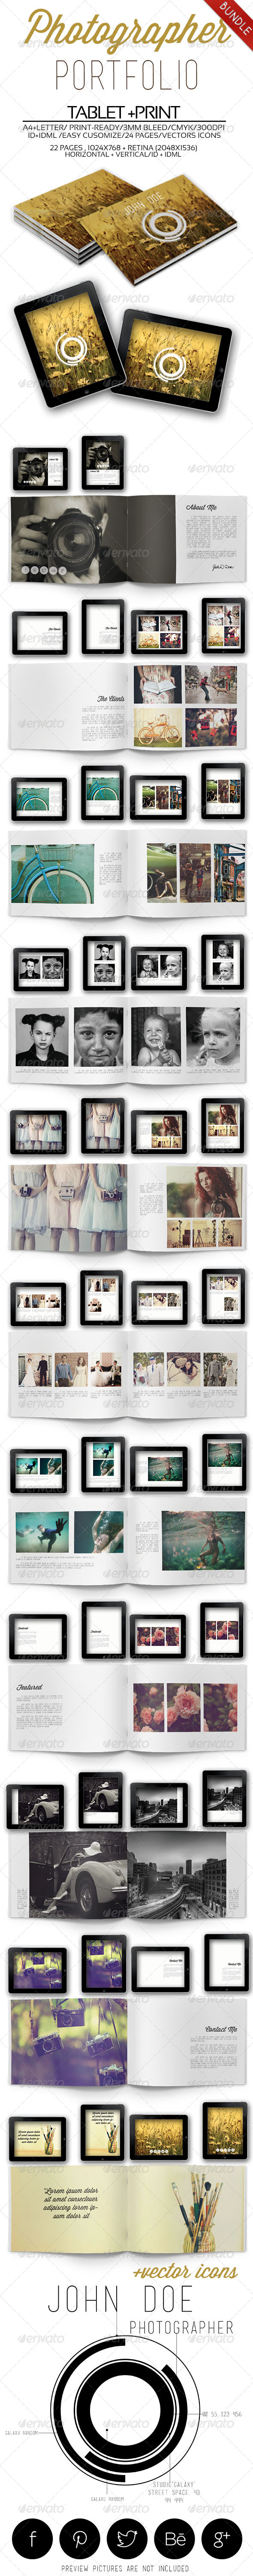 Photographer Portfolio Bundle - Portfolio Brochures